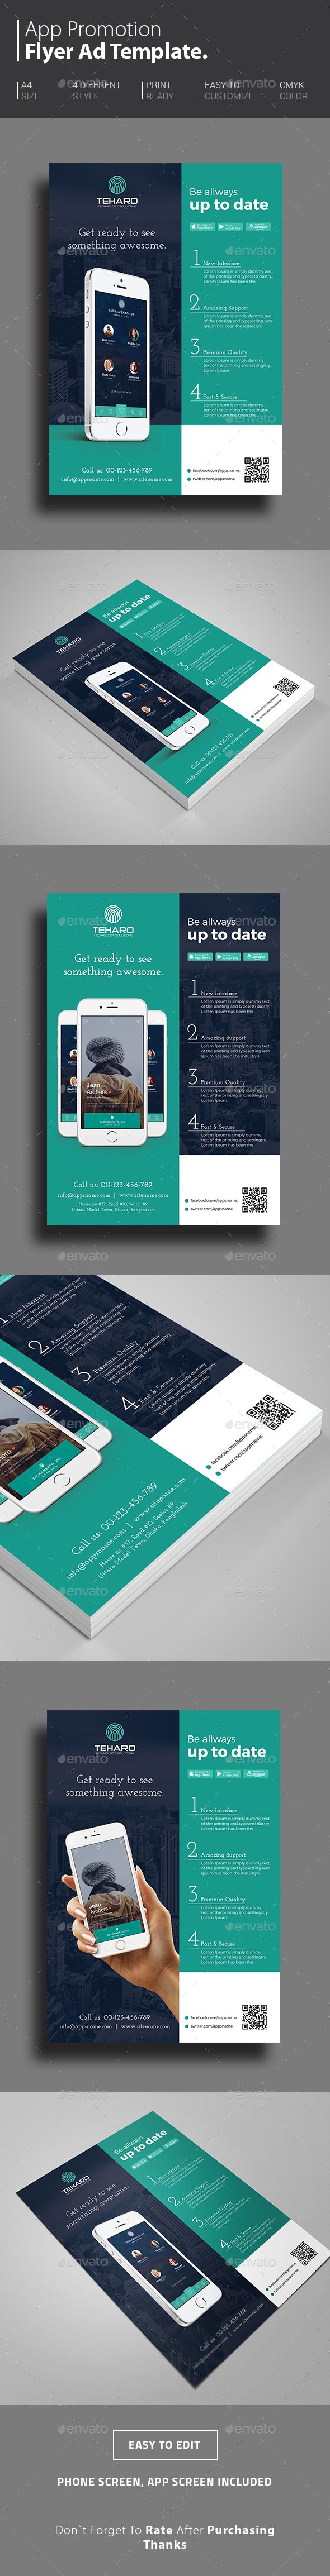 App Promotional Flyer Template PSD. Download here: http://graphicriver.net/item/app-promotional-flyer/14779975?ref=ksioks